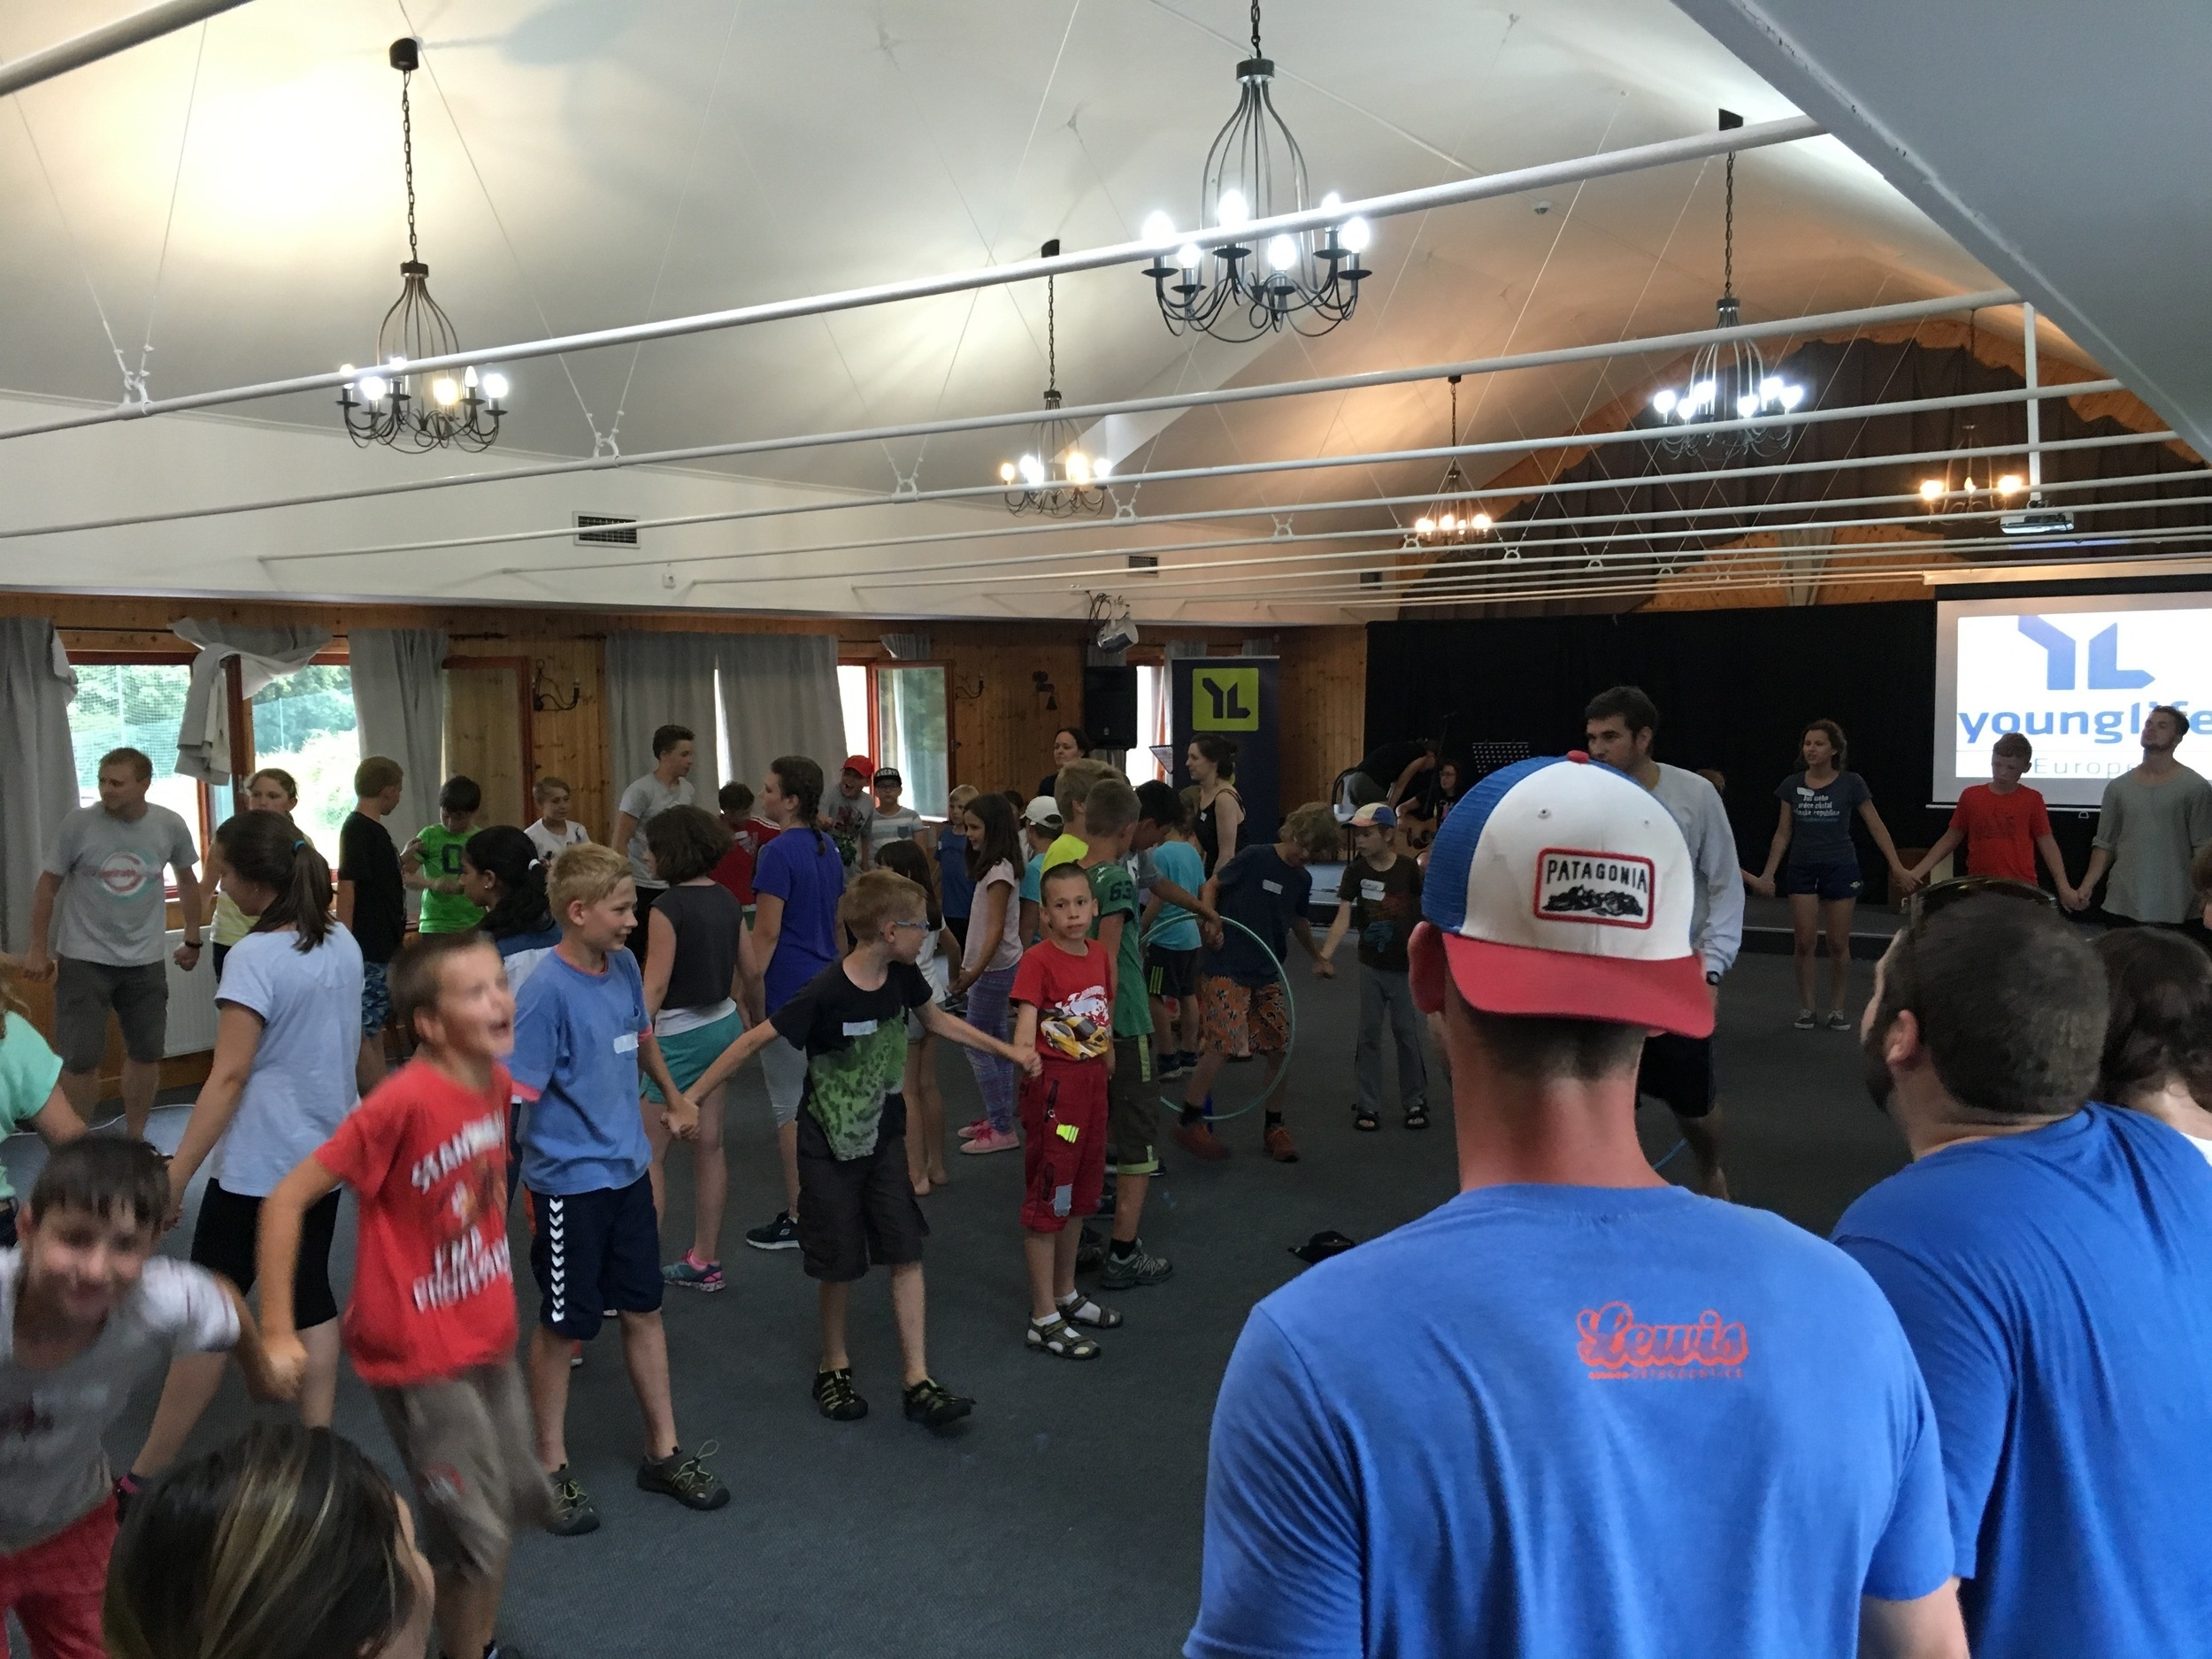 Camp games gave the kids an place to let loose and have fun. Then every evening it would quiet down for a lesson, where each night led up to the Gospel being made clear.